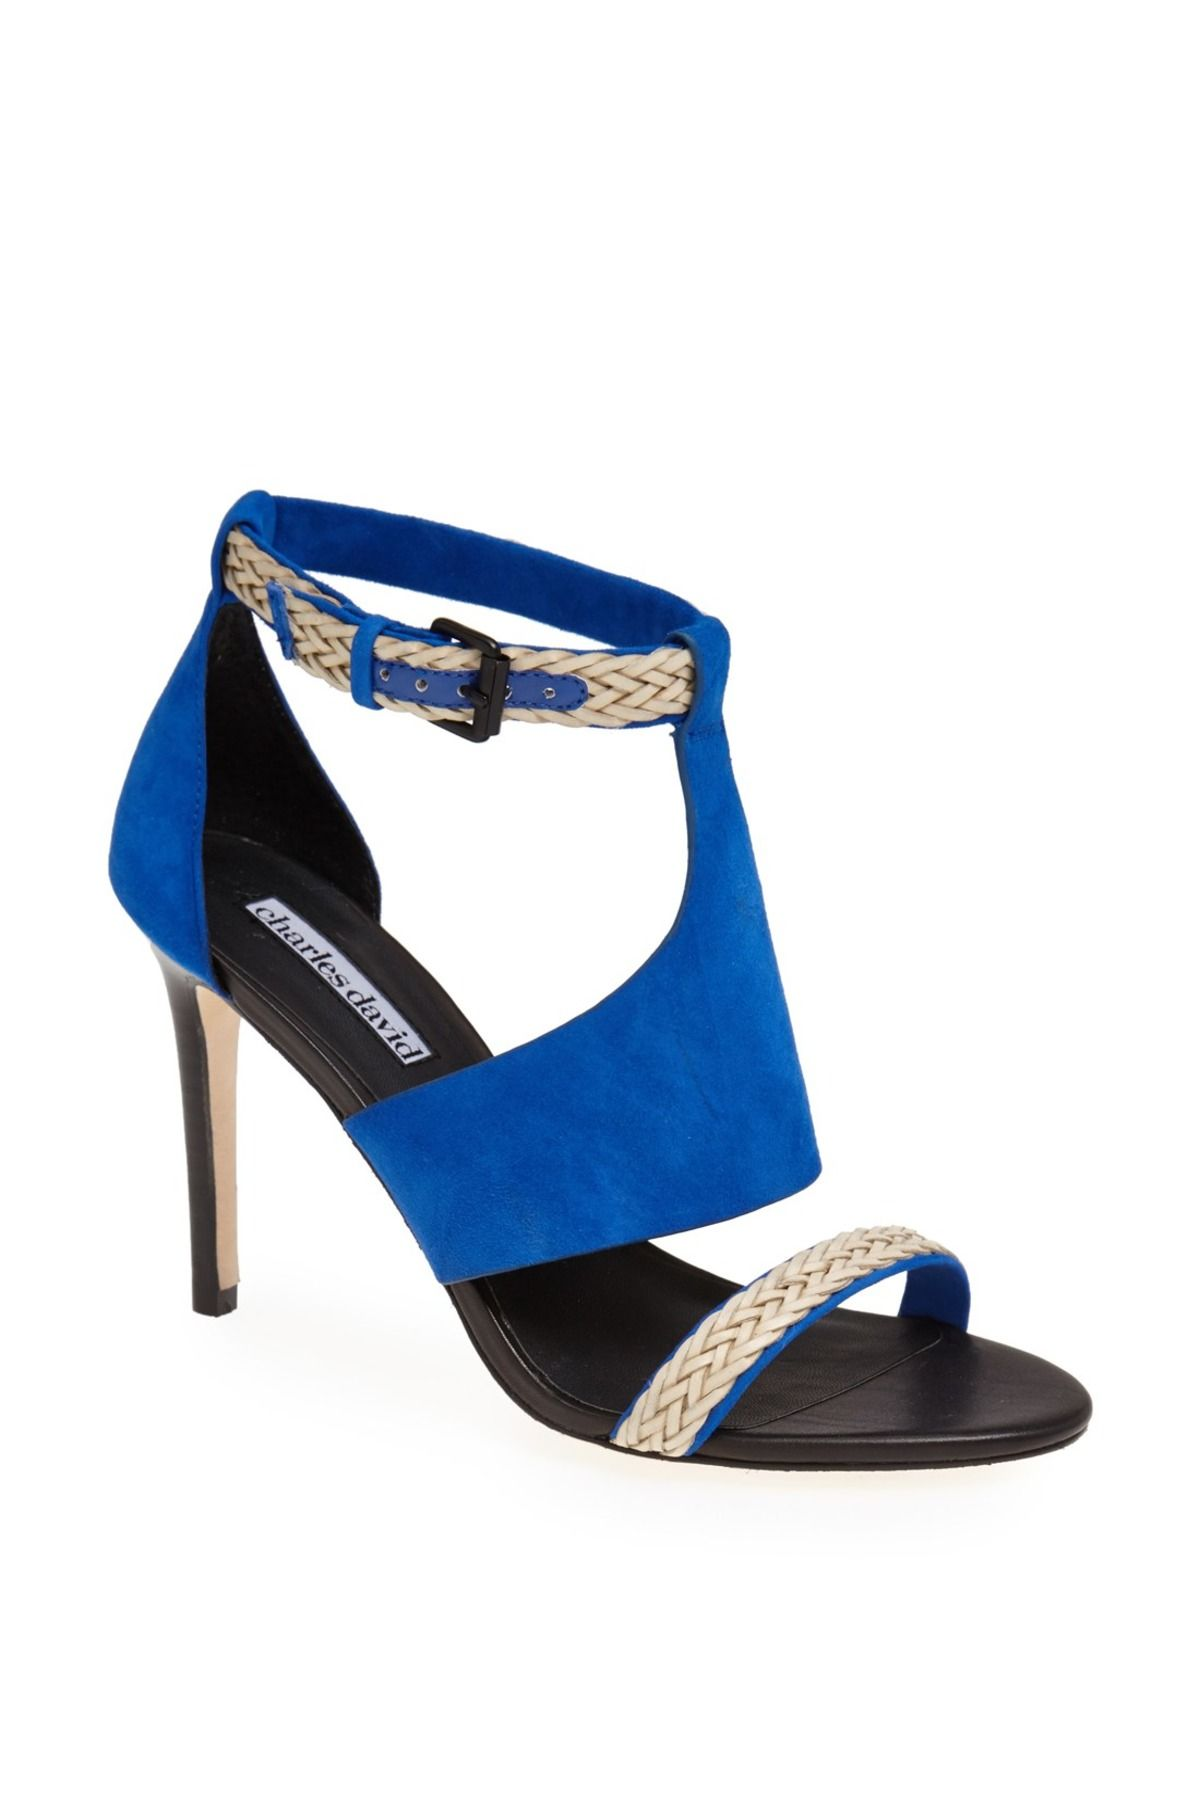 c96d185bc1d7  Integrity  Sandal by Charles David on  nordstrom rack.